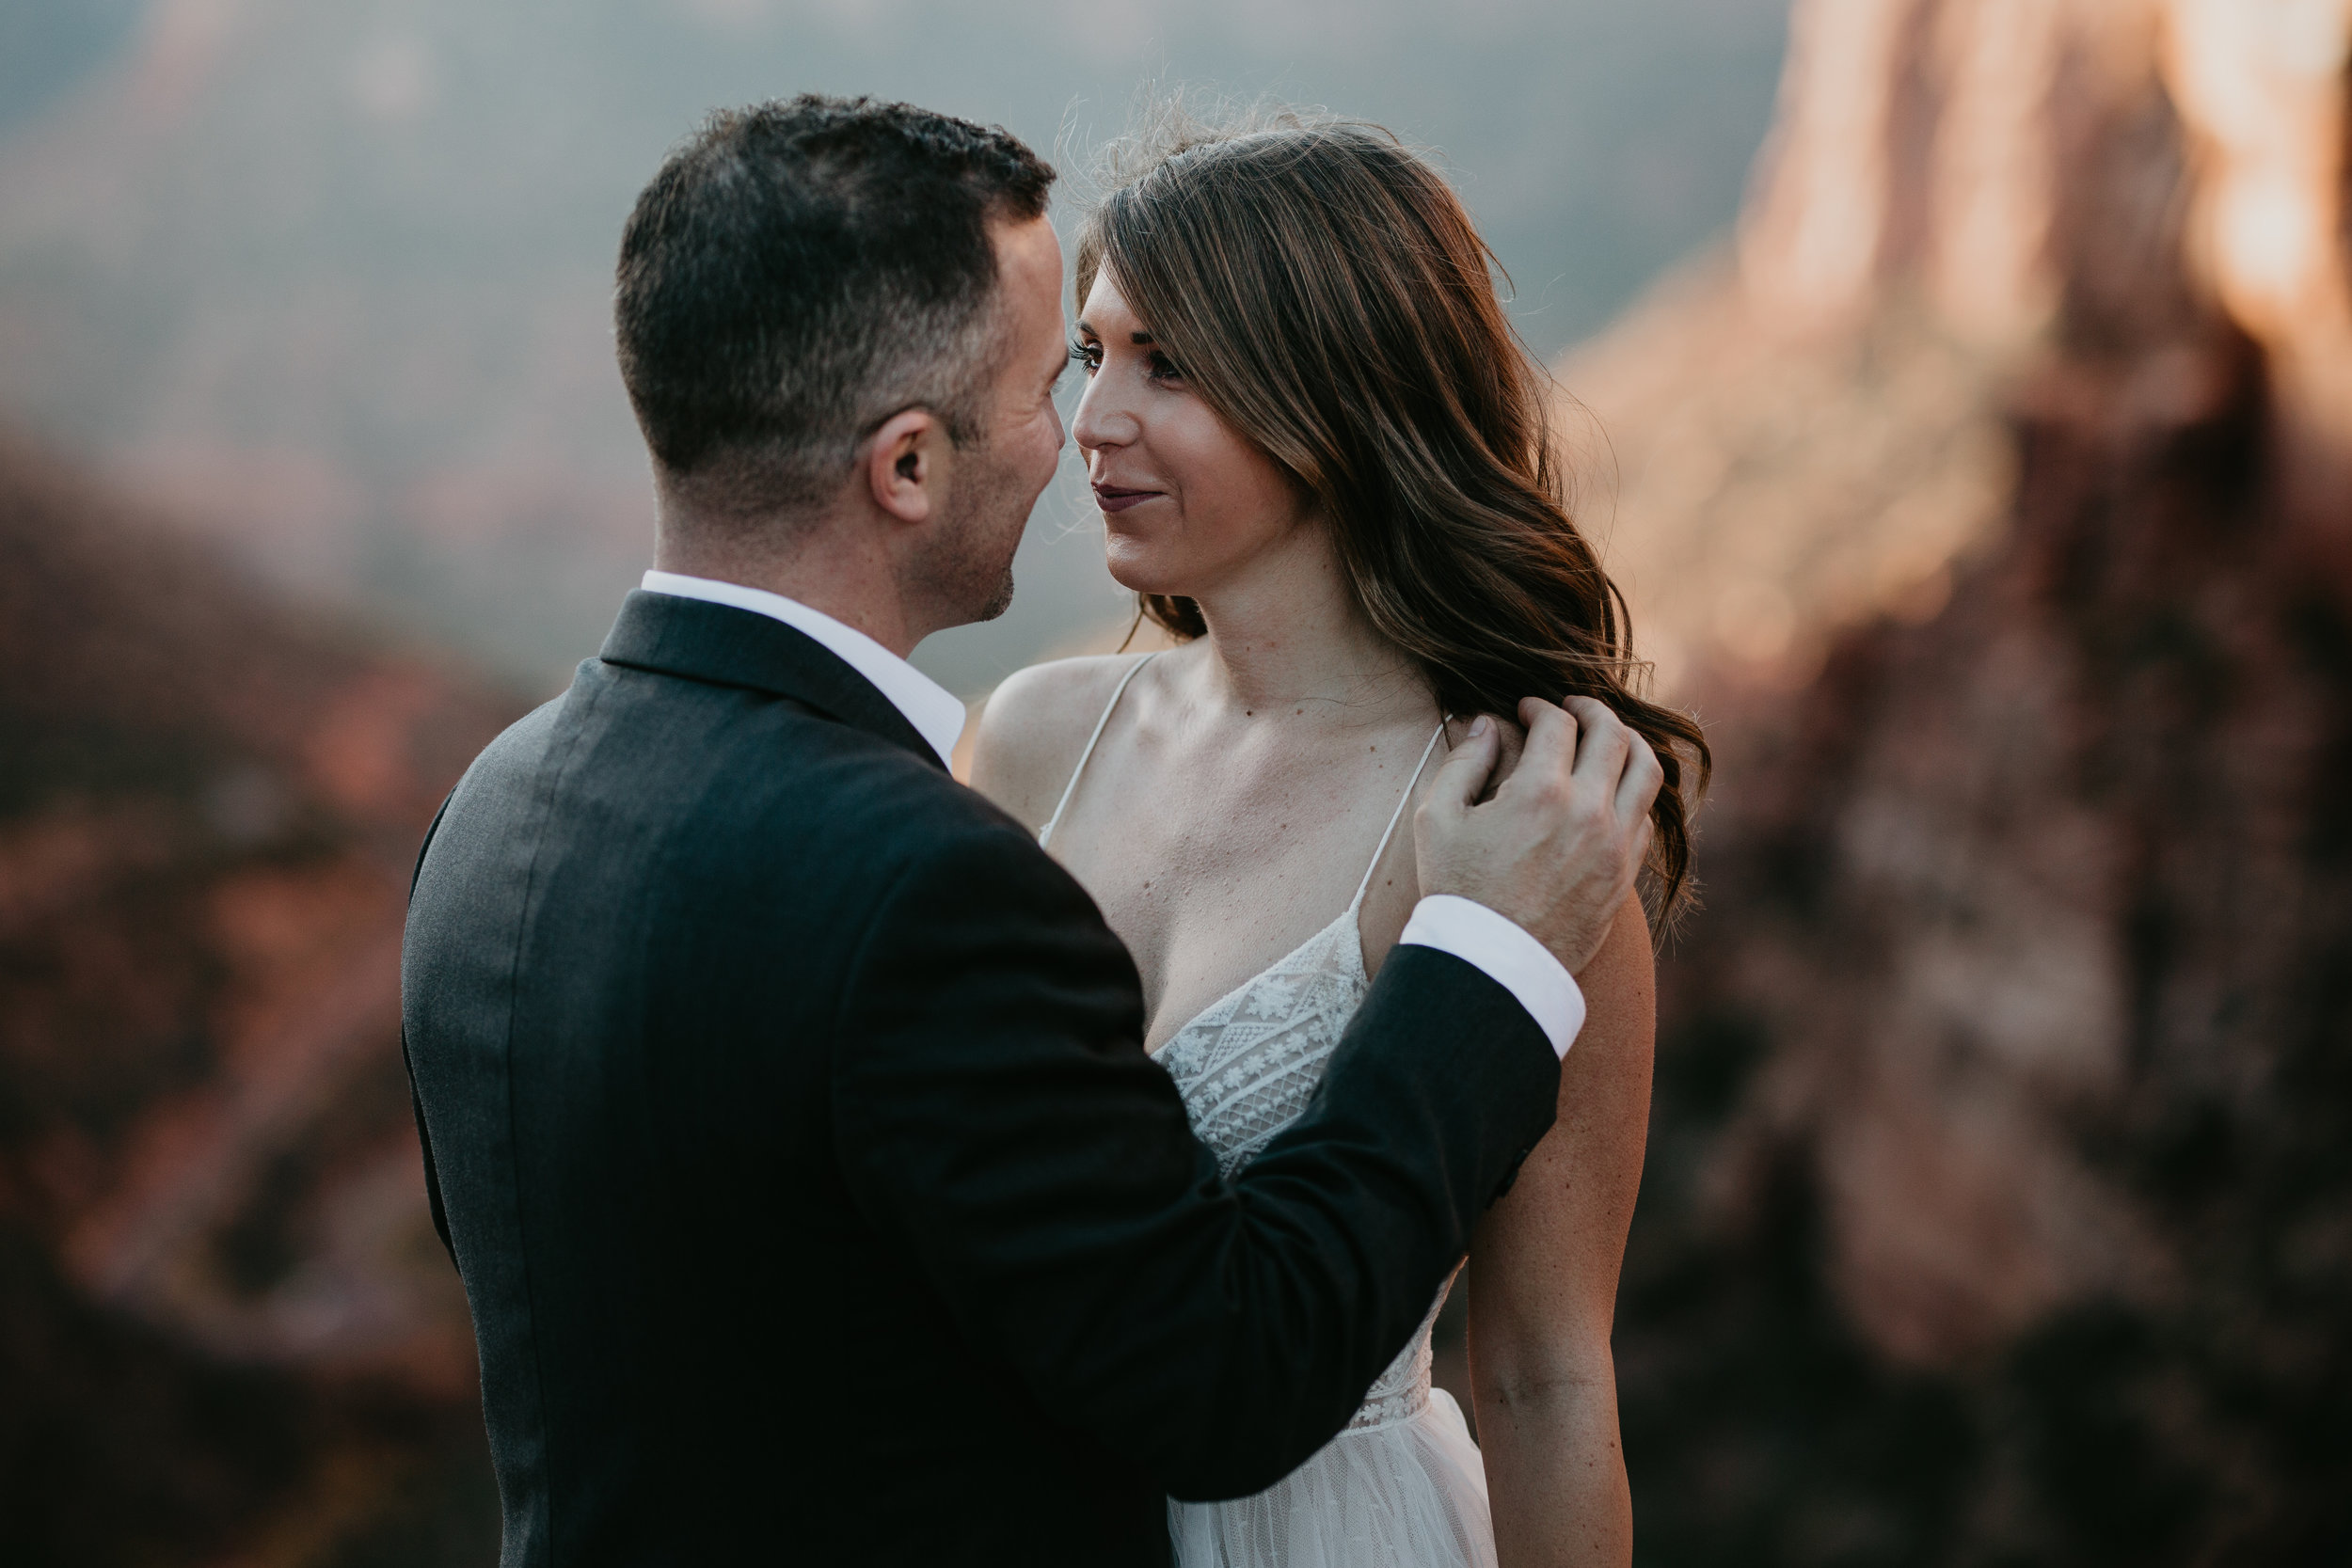 nicole-daacke-photography-zion-national-park-elopement-photographer-canyon-overlook-trail-elope-hiking-adventure-wedding-photos-fall-utah-red-rock-canyon-stgeorge-eloping-photographer-41.jpg